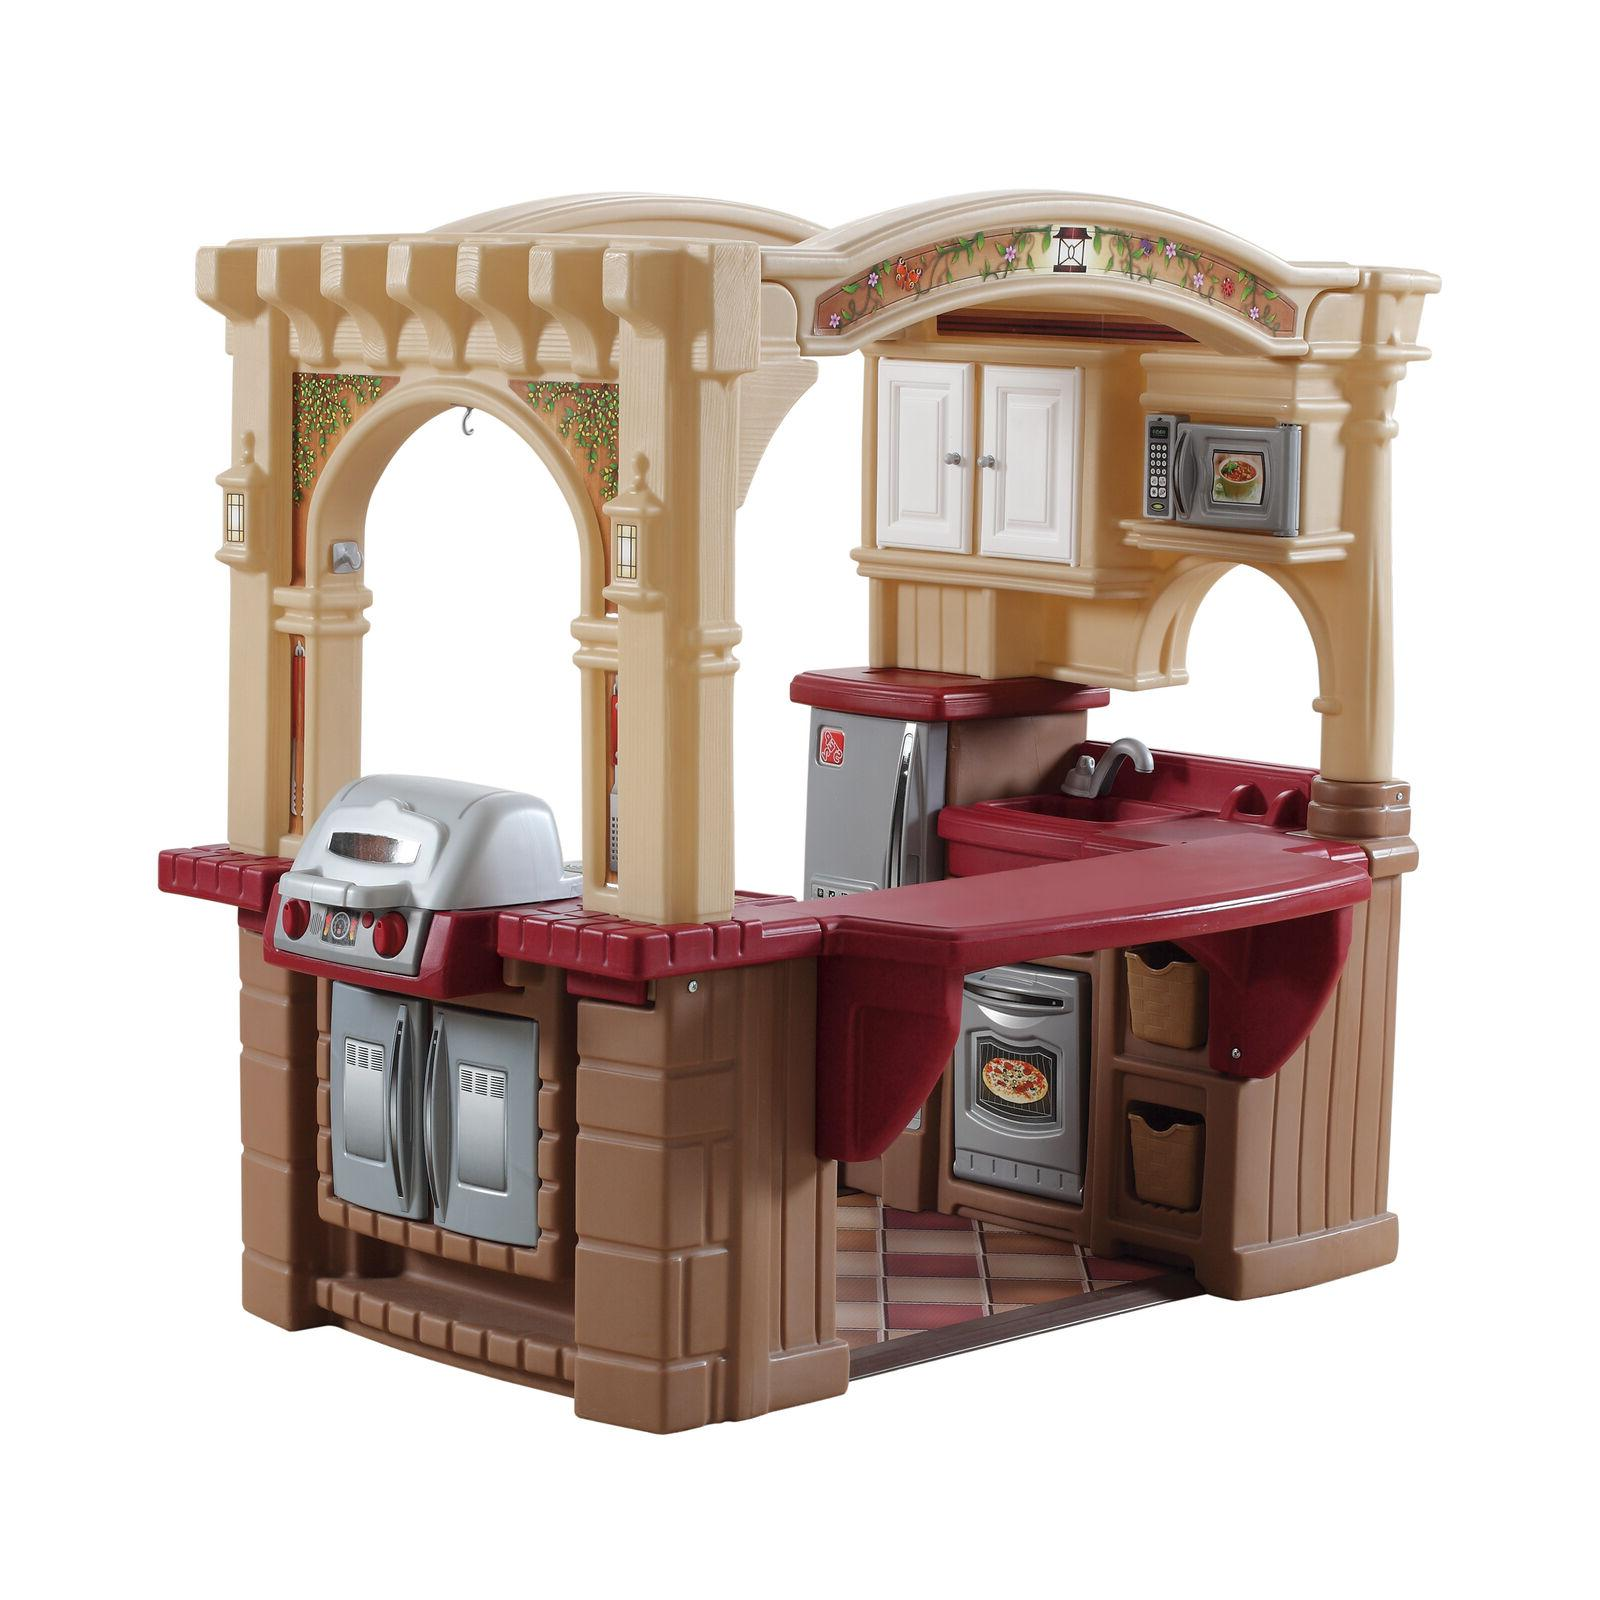 Walk In Play Toy for Toddler Child Playhouse